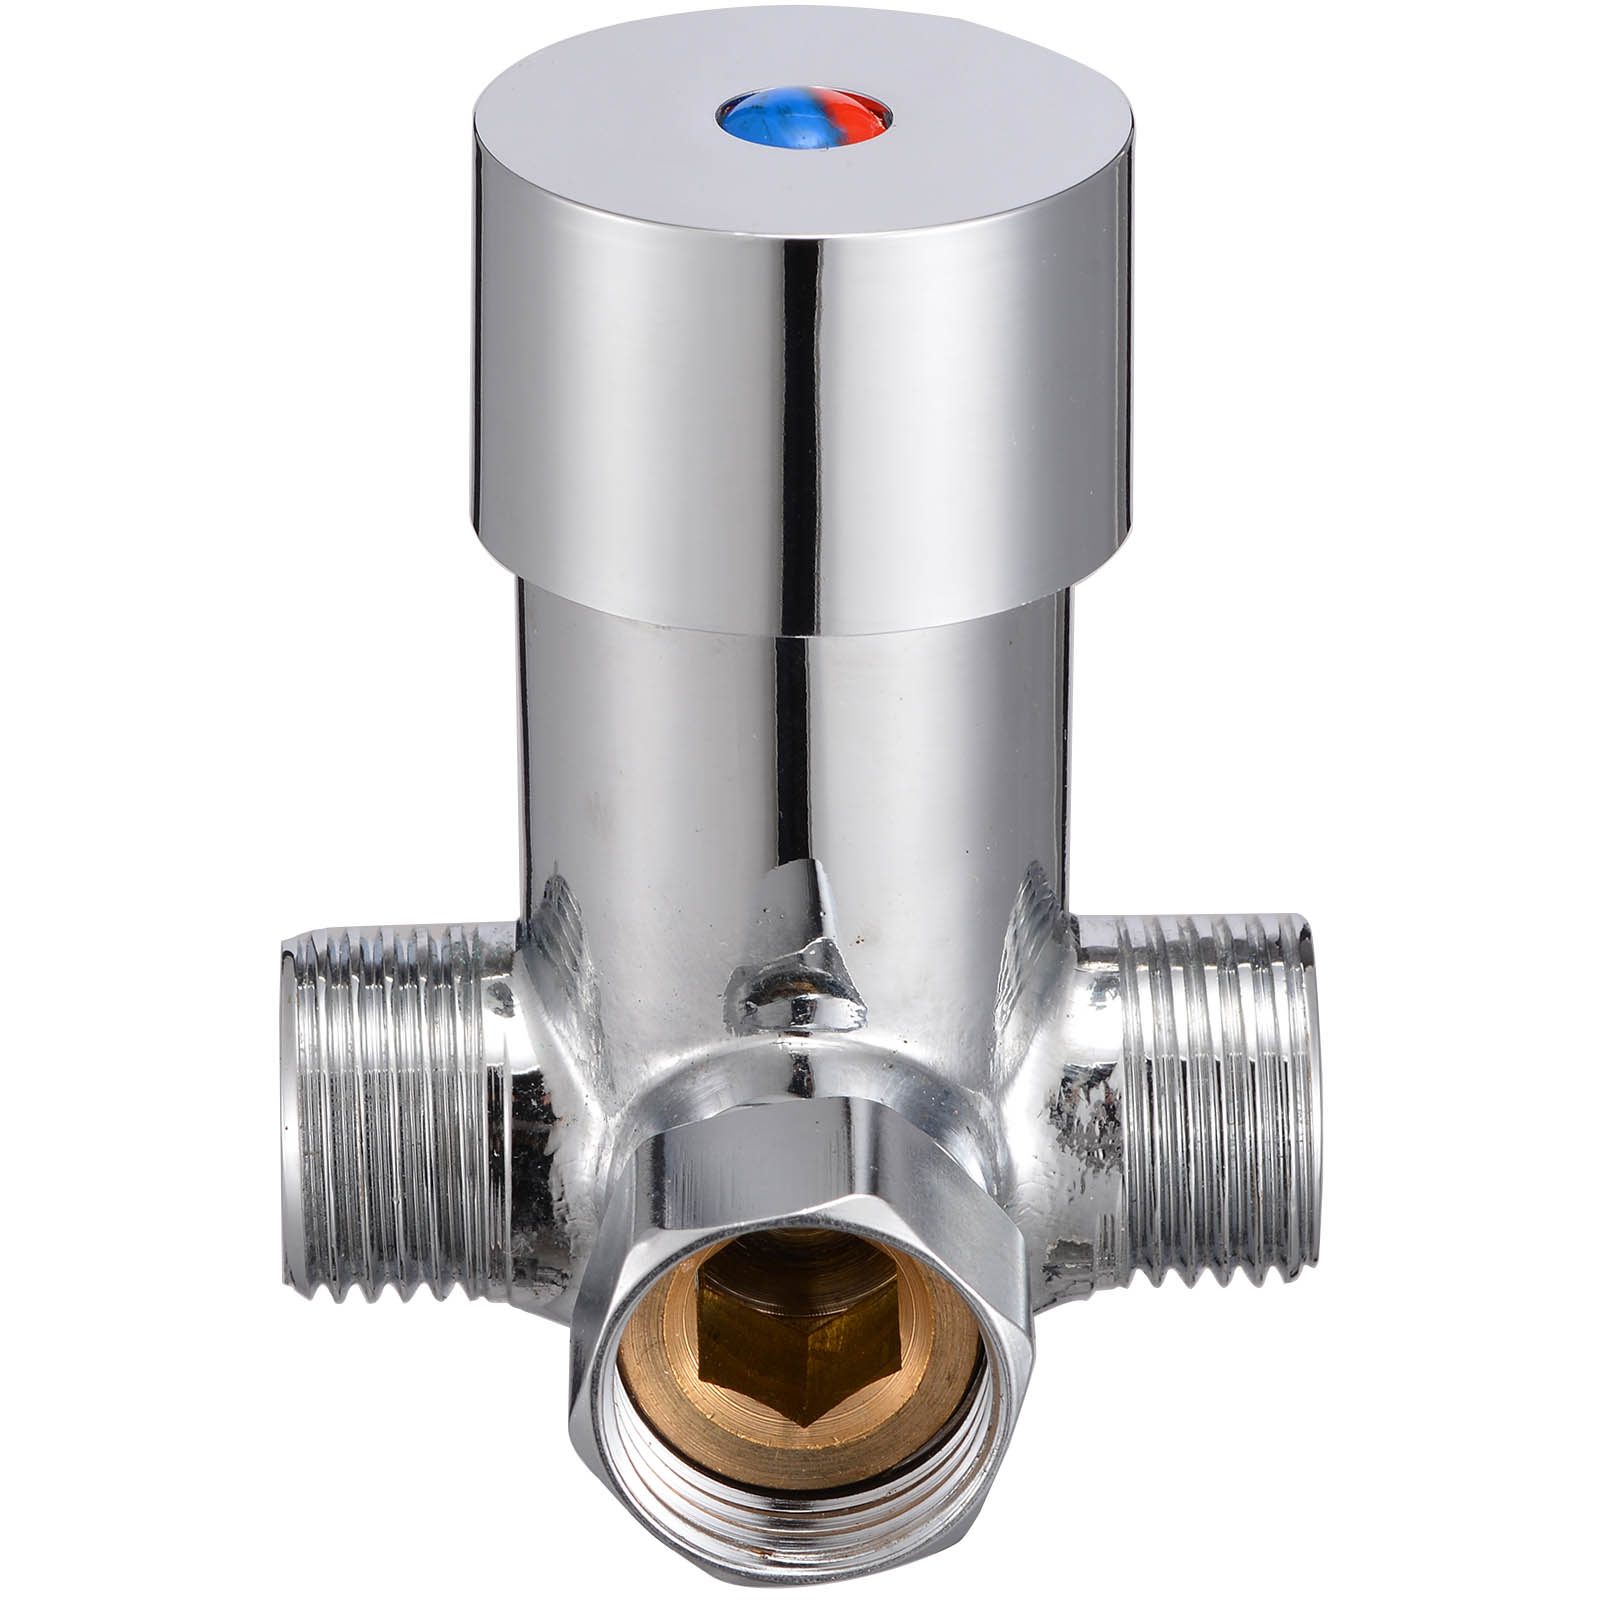 Hot Cold Water Valve Faucet Mixing Valve Temperature Control Thermostatic Sensor Tap For Shower Head Faucet Taps